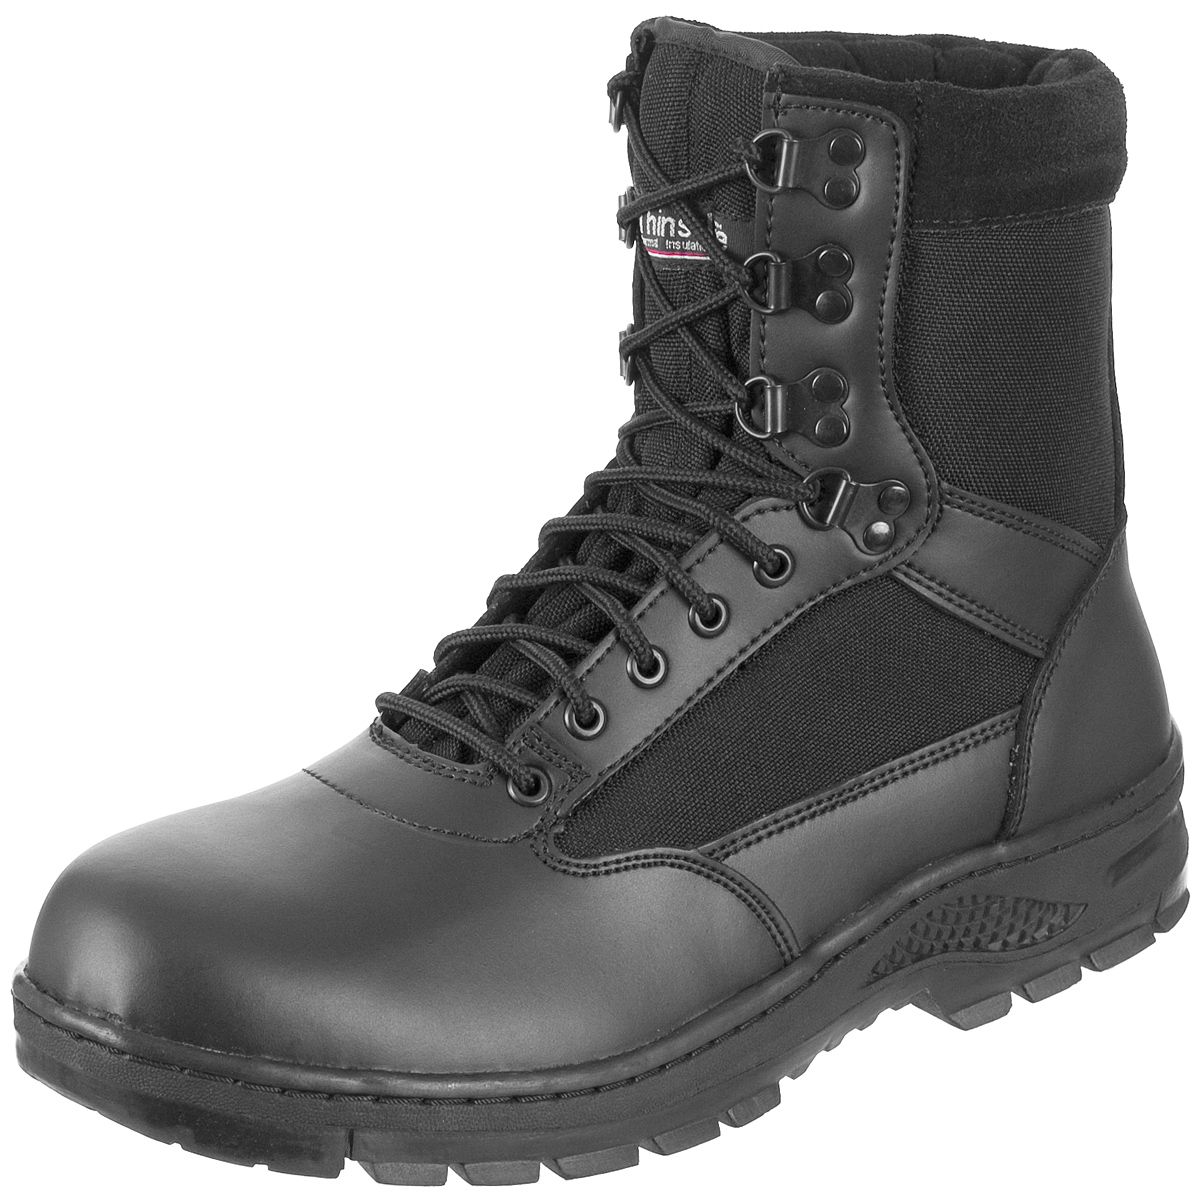 Sentinel SurplUS Tactical Mens Police Security Footwear Leather Army Work 8 041670e05cfd